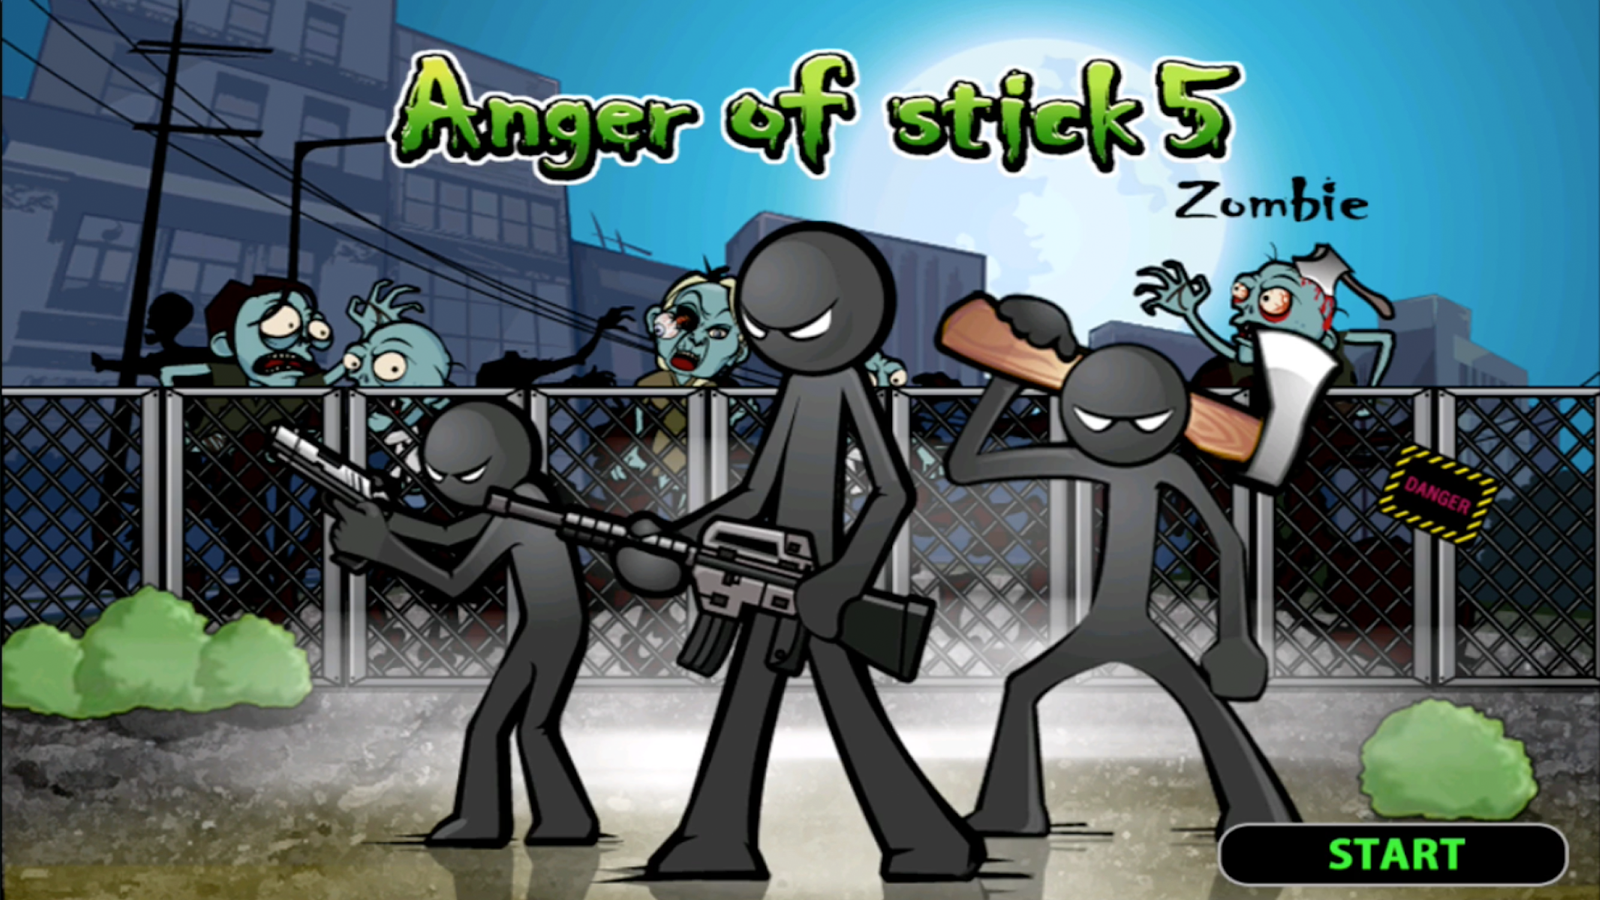 Anger of Stick 5 1.1.5 APK Download - Android Action Games